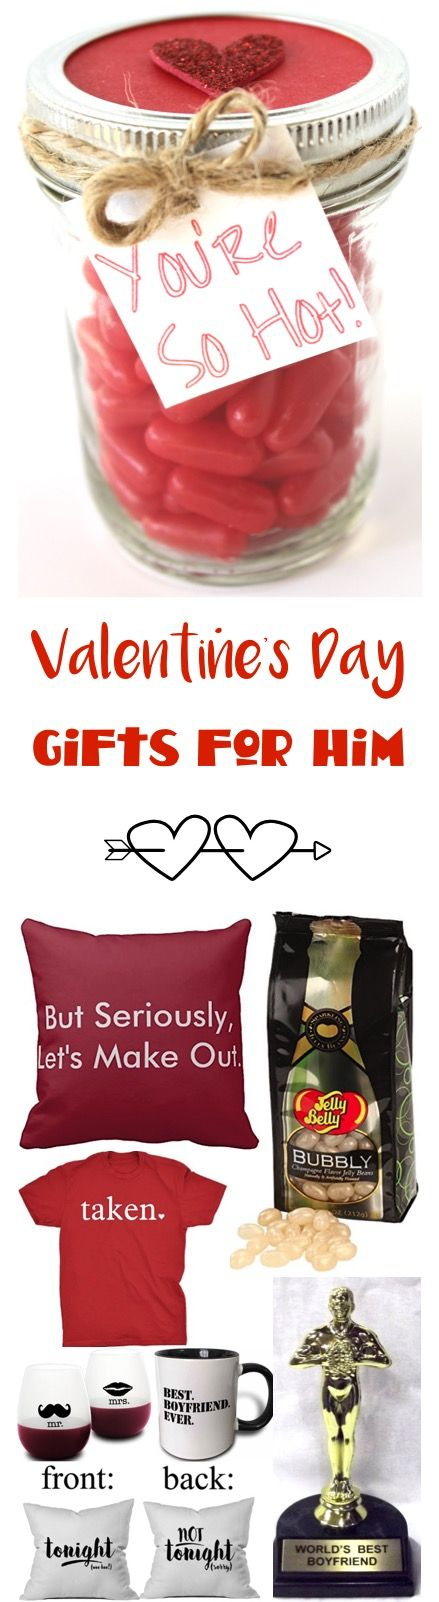 44 Valentineu0027s Day Gifts For Him! {Fun U0026 Romantic}